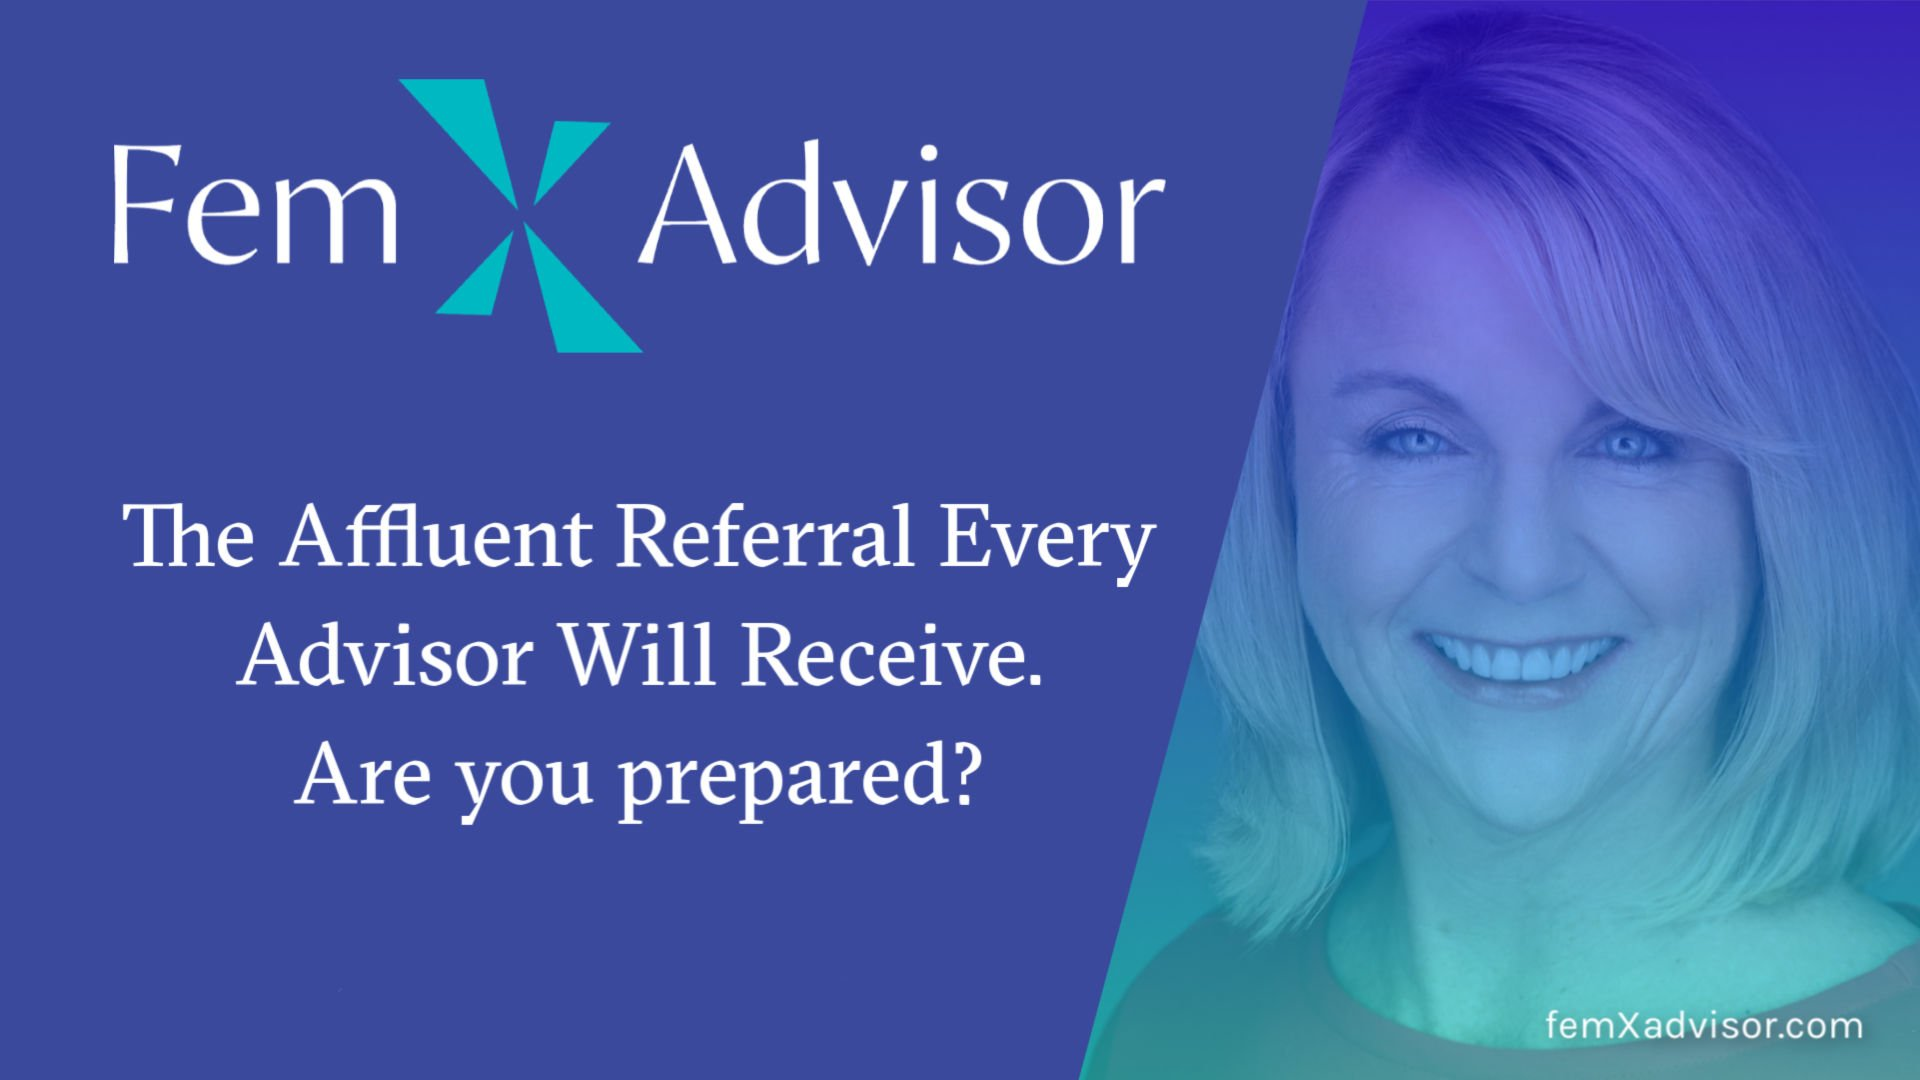 The Affluent Referral Every Advisor Will Receive - Are You Prepared?